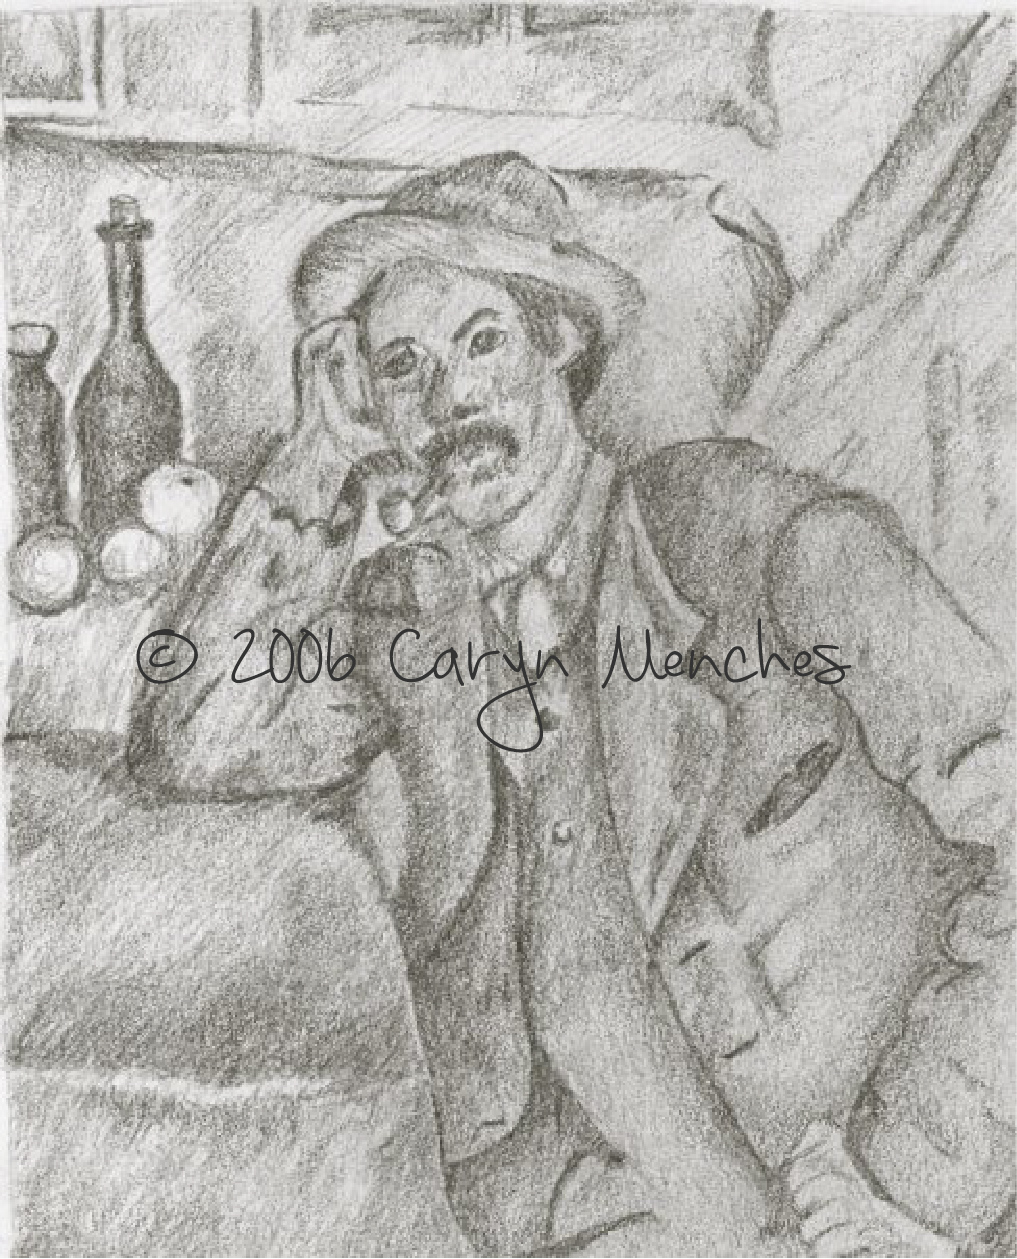 My take on drawing from the masters: The Smoker by Paul Cezanne. Pencil on Paper - Caryn Menches. © 2006 Caryn Menches.